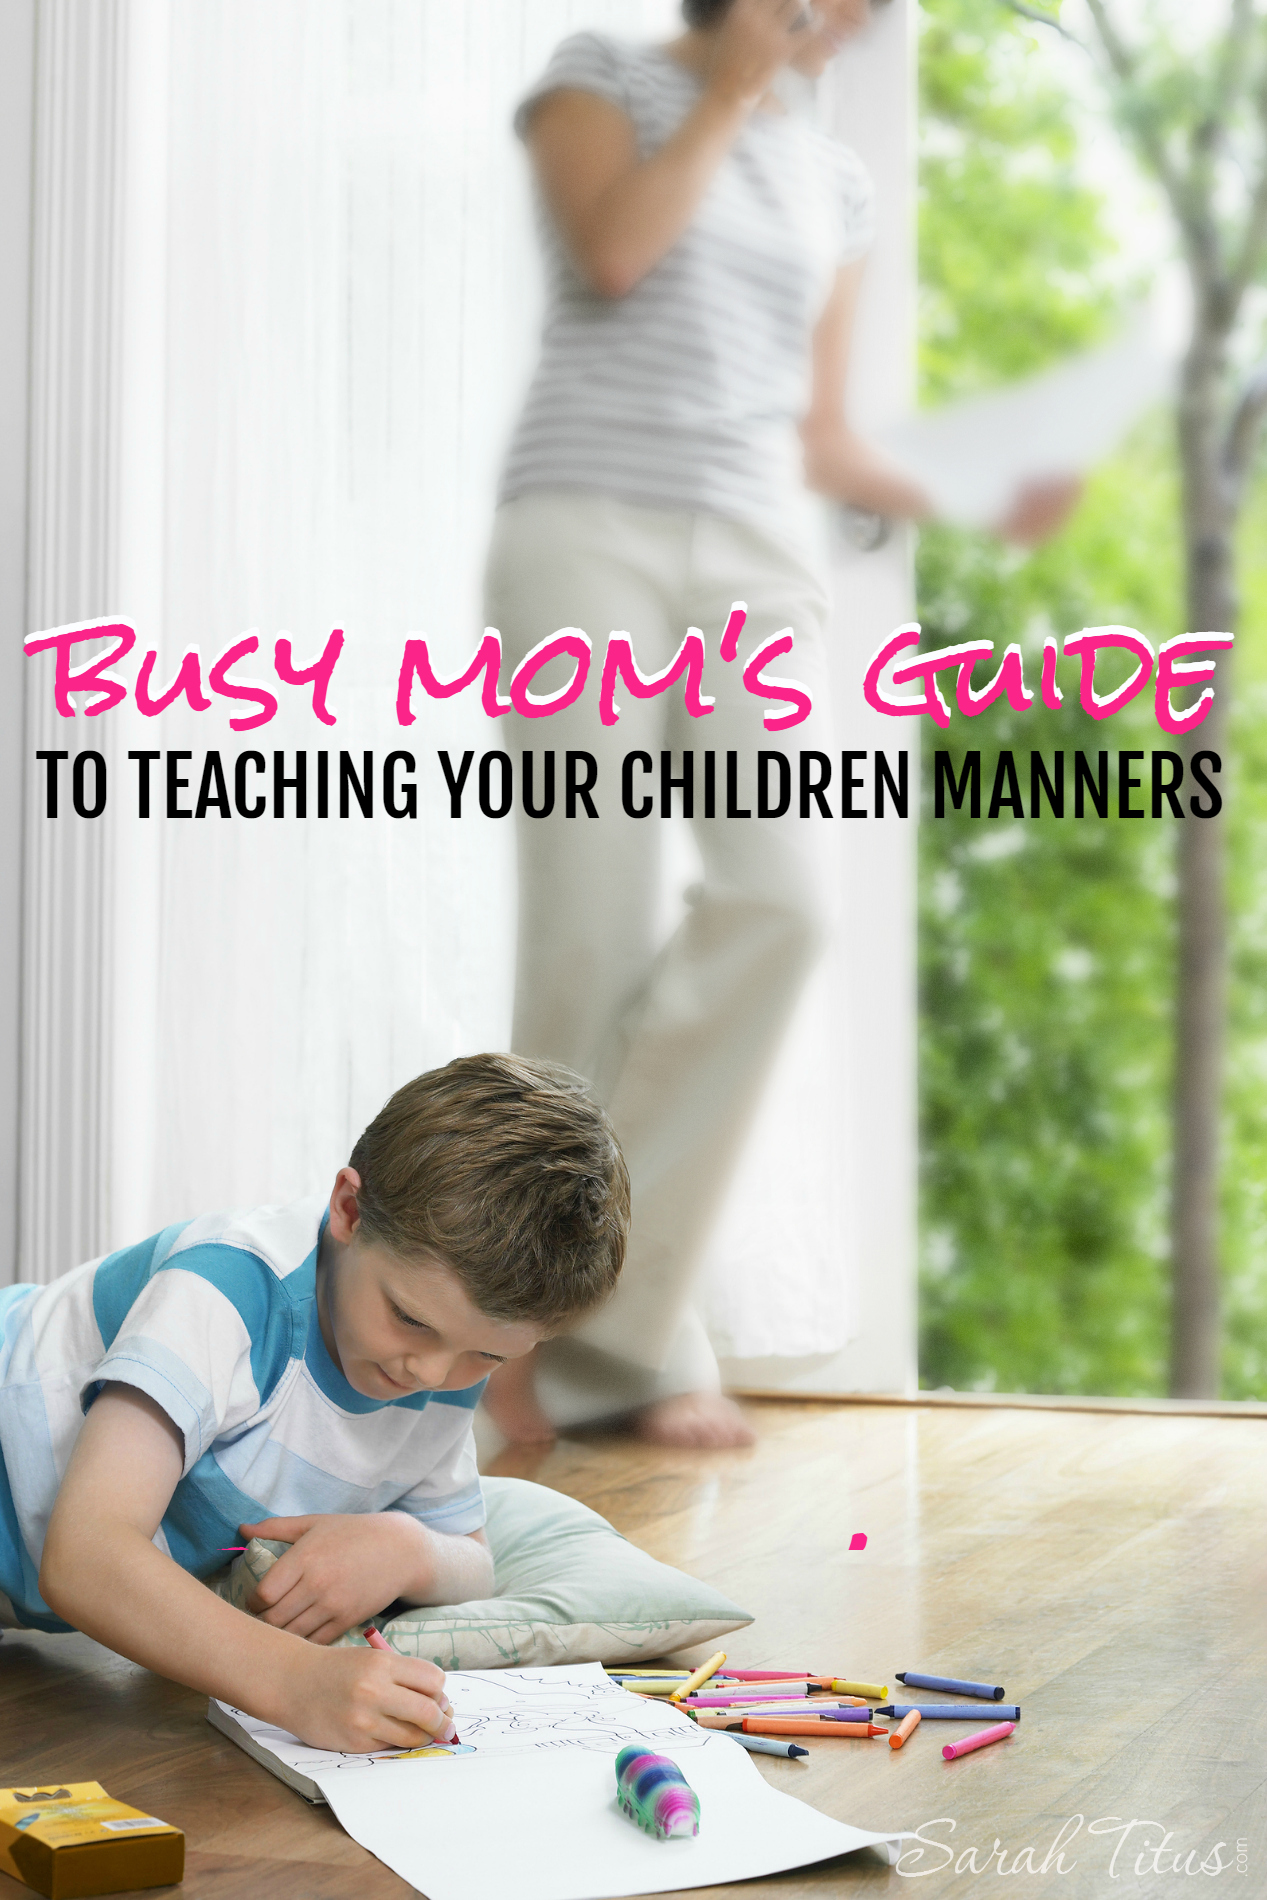 busy mom s guide to teaching your children manners sarah titus have you ever wondered how some children act one way in public while others act a